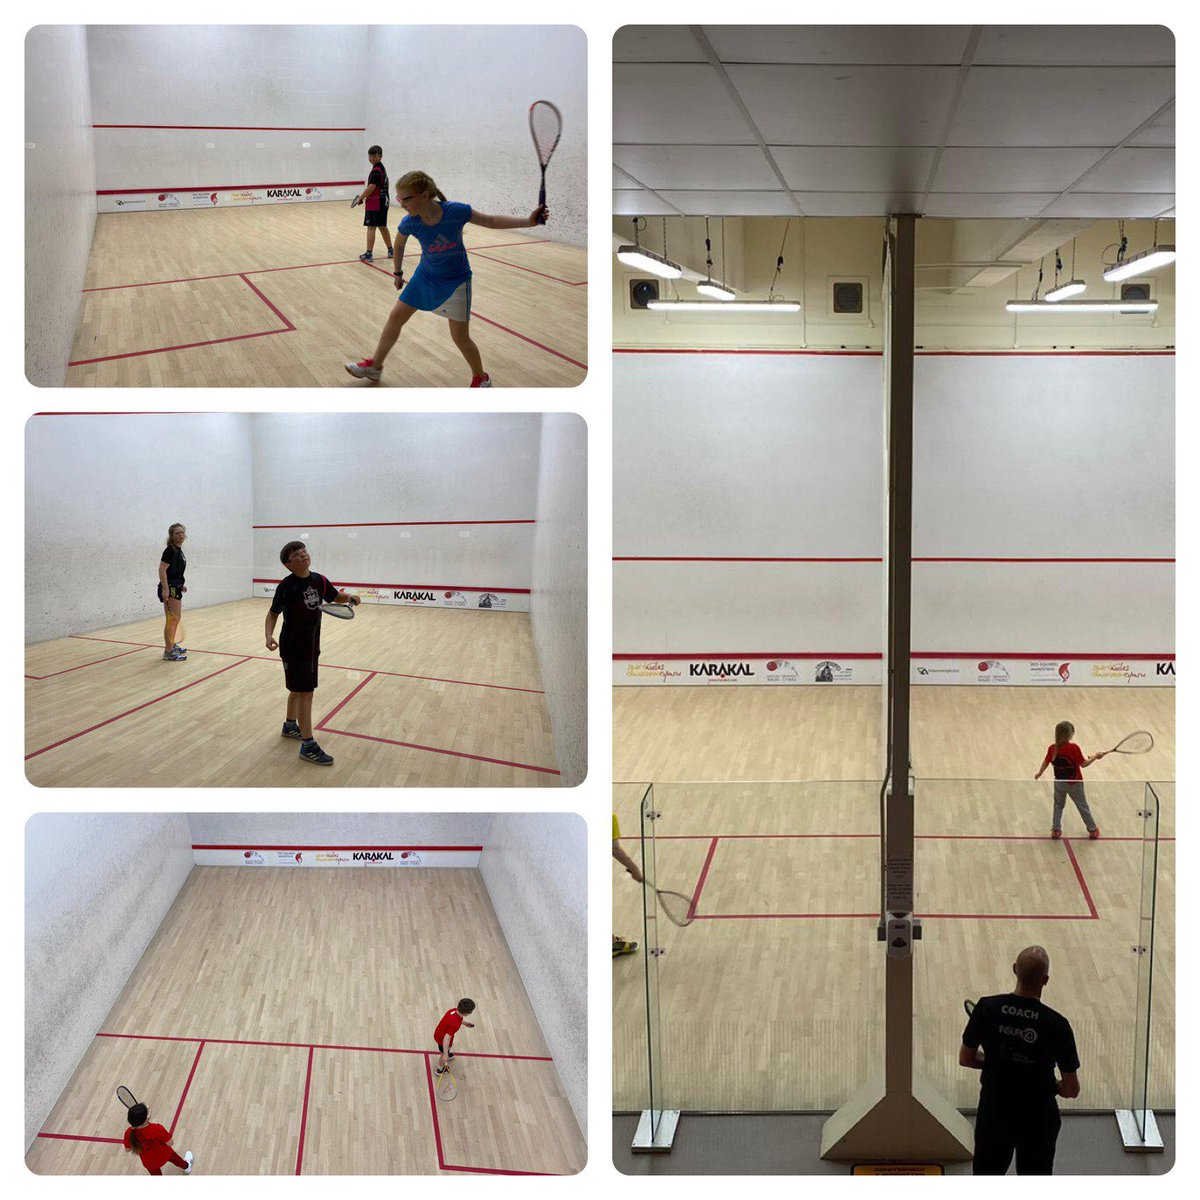 2nd Futures session & a new bunch of players positive feedback from coaches @SallyEllenDavis @MerthyrSquash.Trialed a new Q&A for the players to gauge engagement & answers all correct which is first class. @sqwales has some talent coming through.#positive https://t.co/UkY4vMtxPb